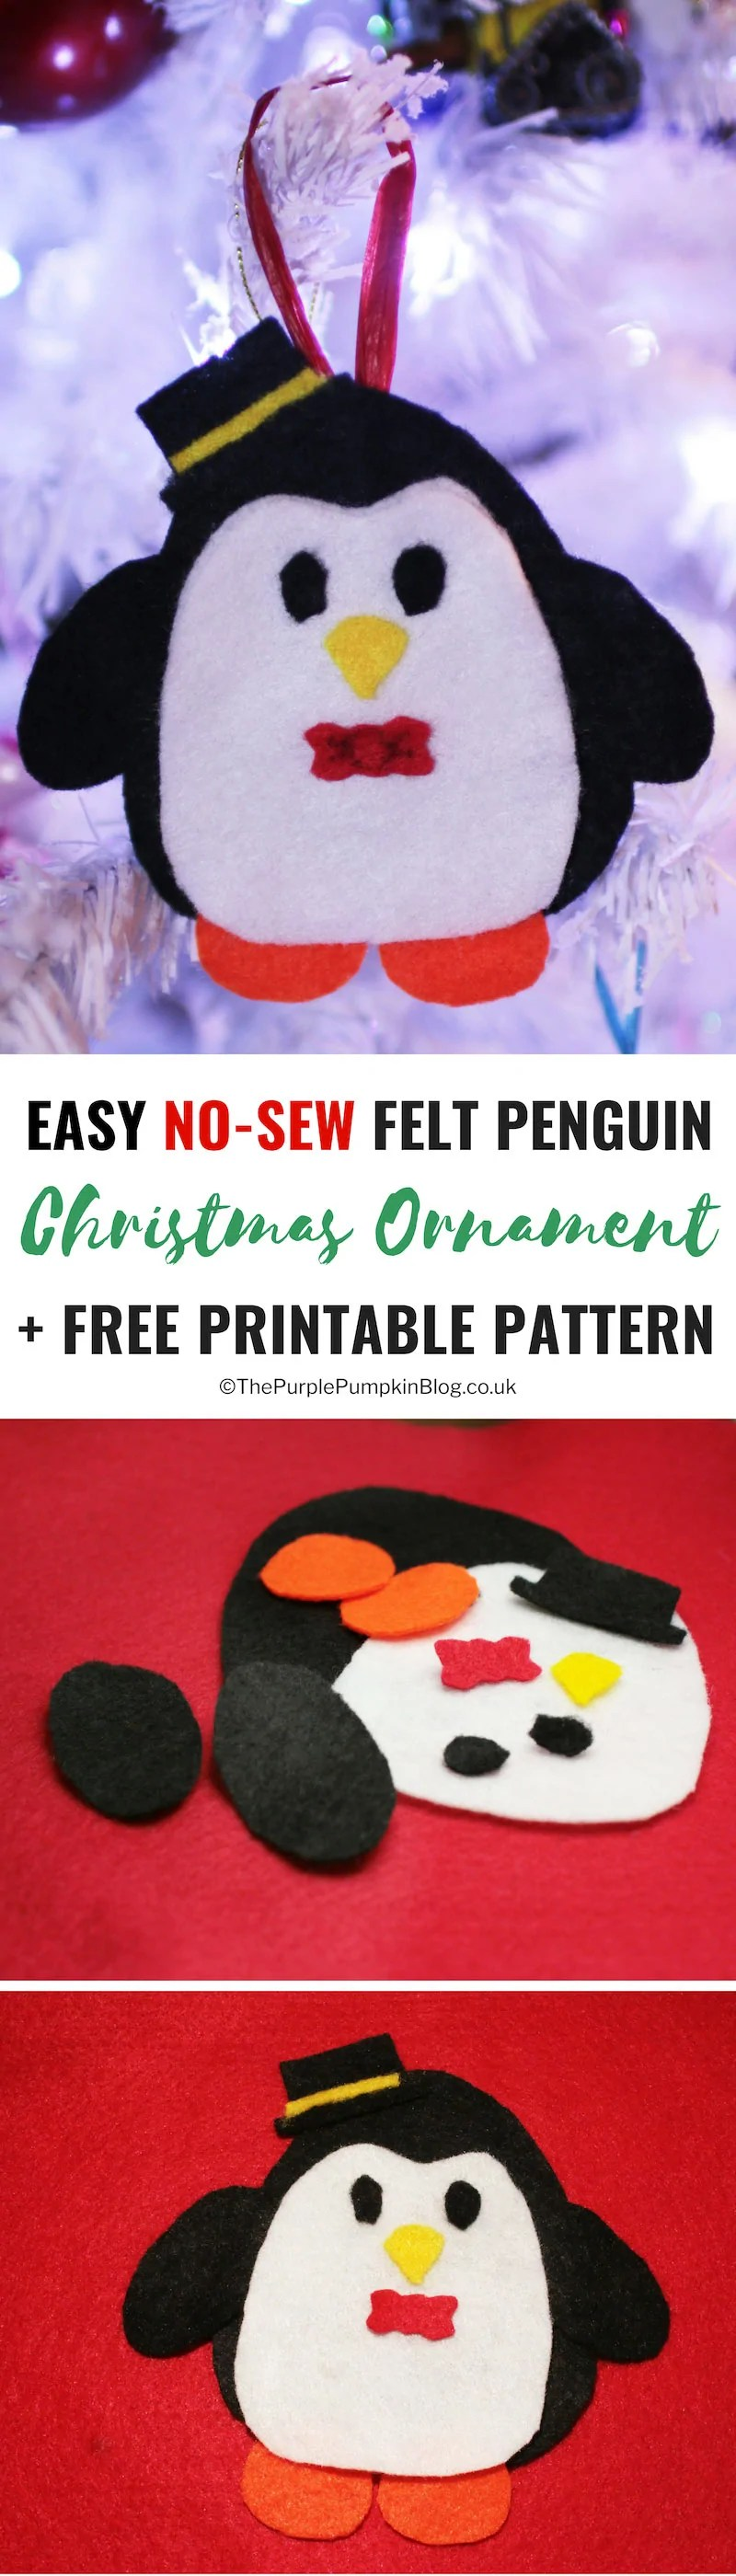 picture relating to Penguin Pattern Printable called Uncomplicated No-Sew Felt Xmas Ornament Penguin + Absolutely free Printable